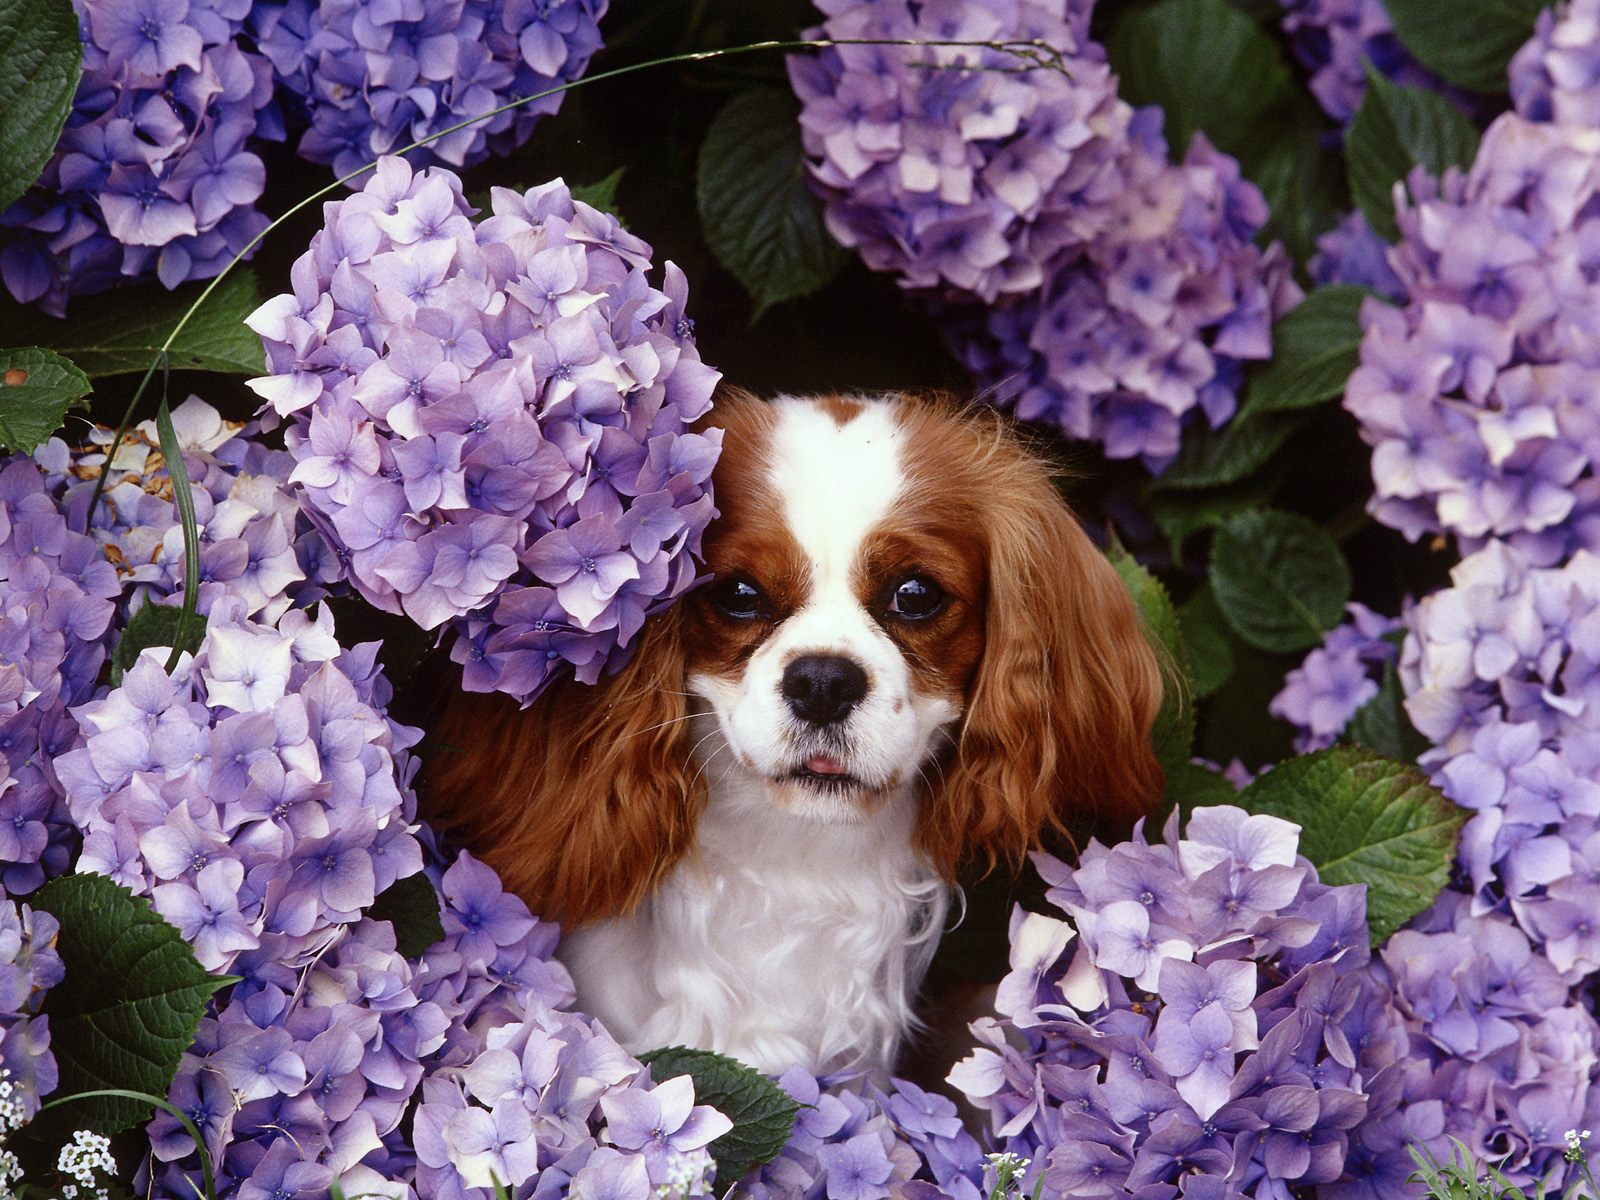 King Charles Spaniel dog in flowers wallpaper